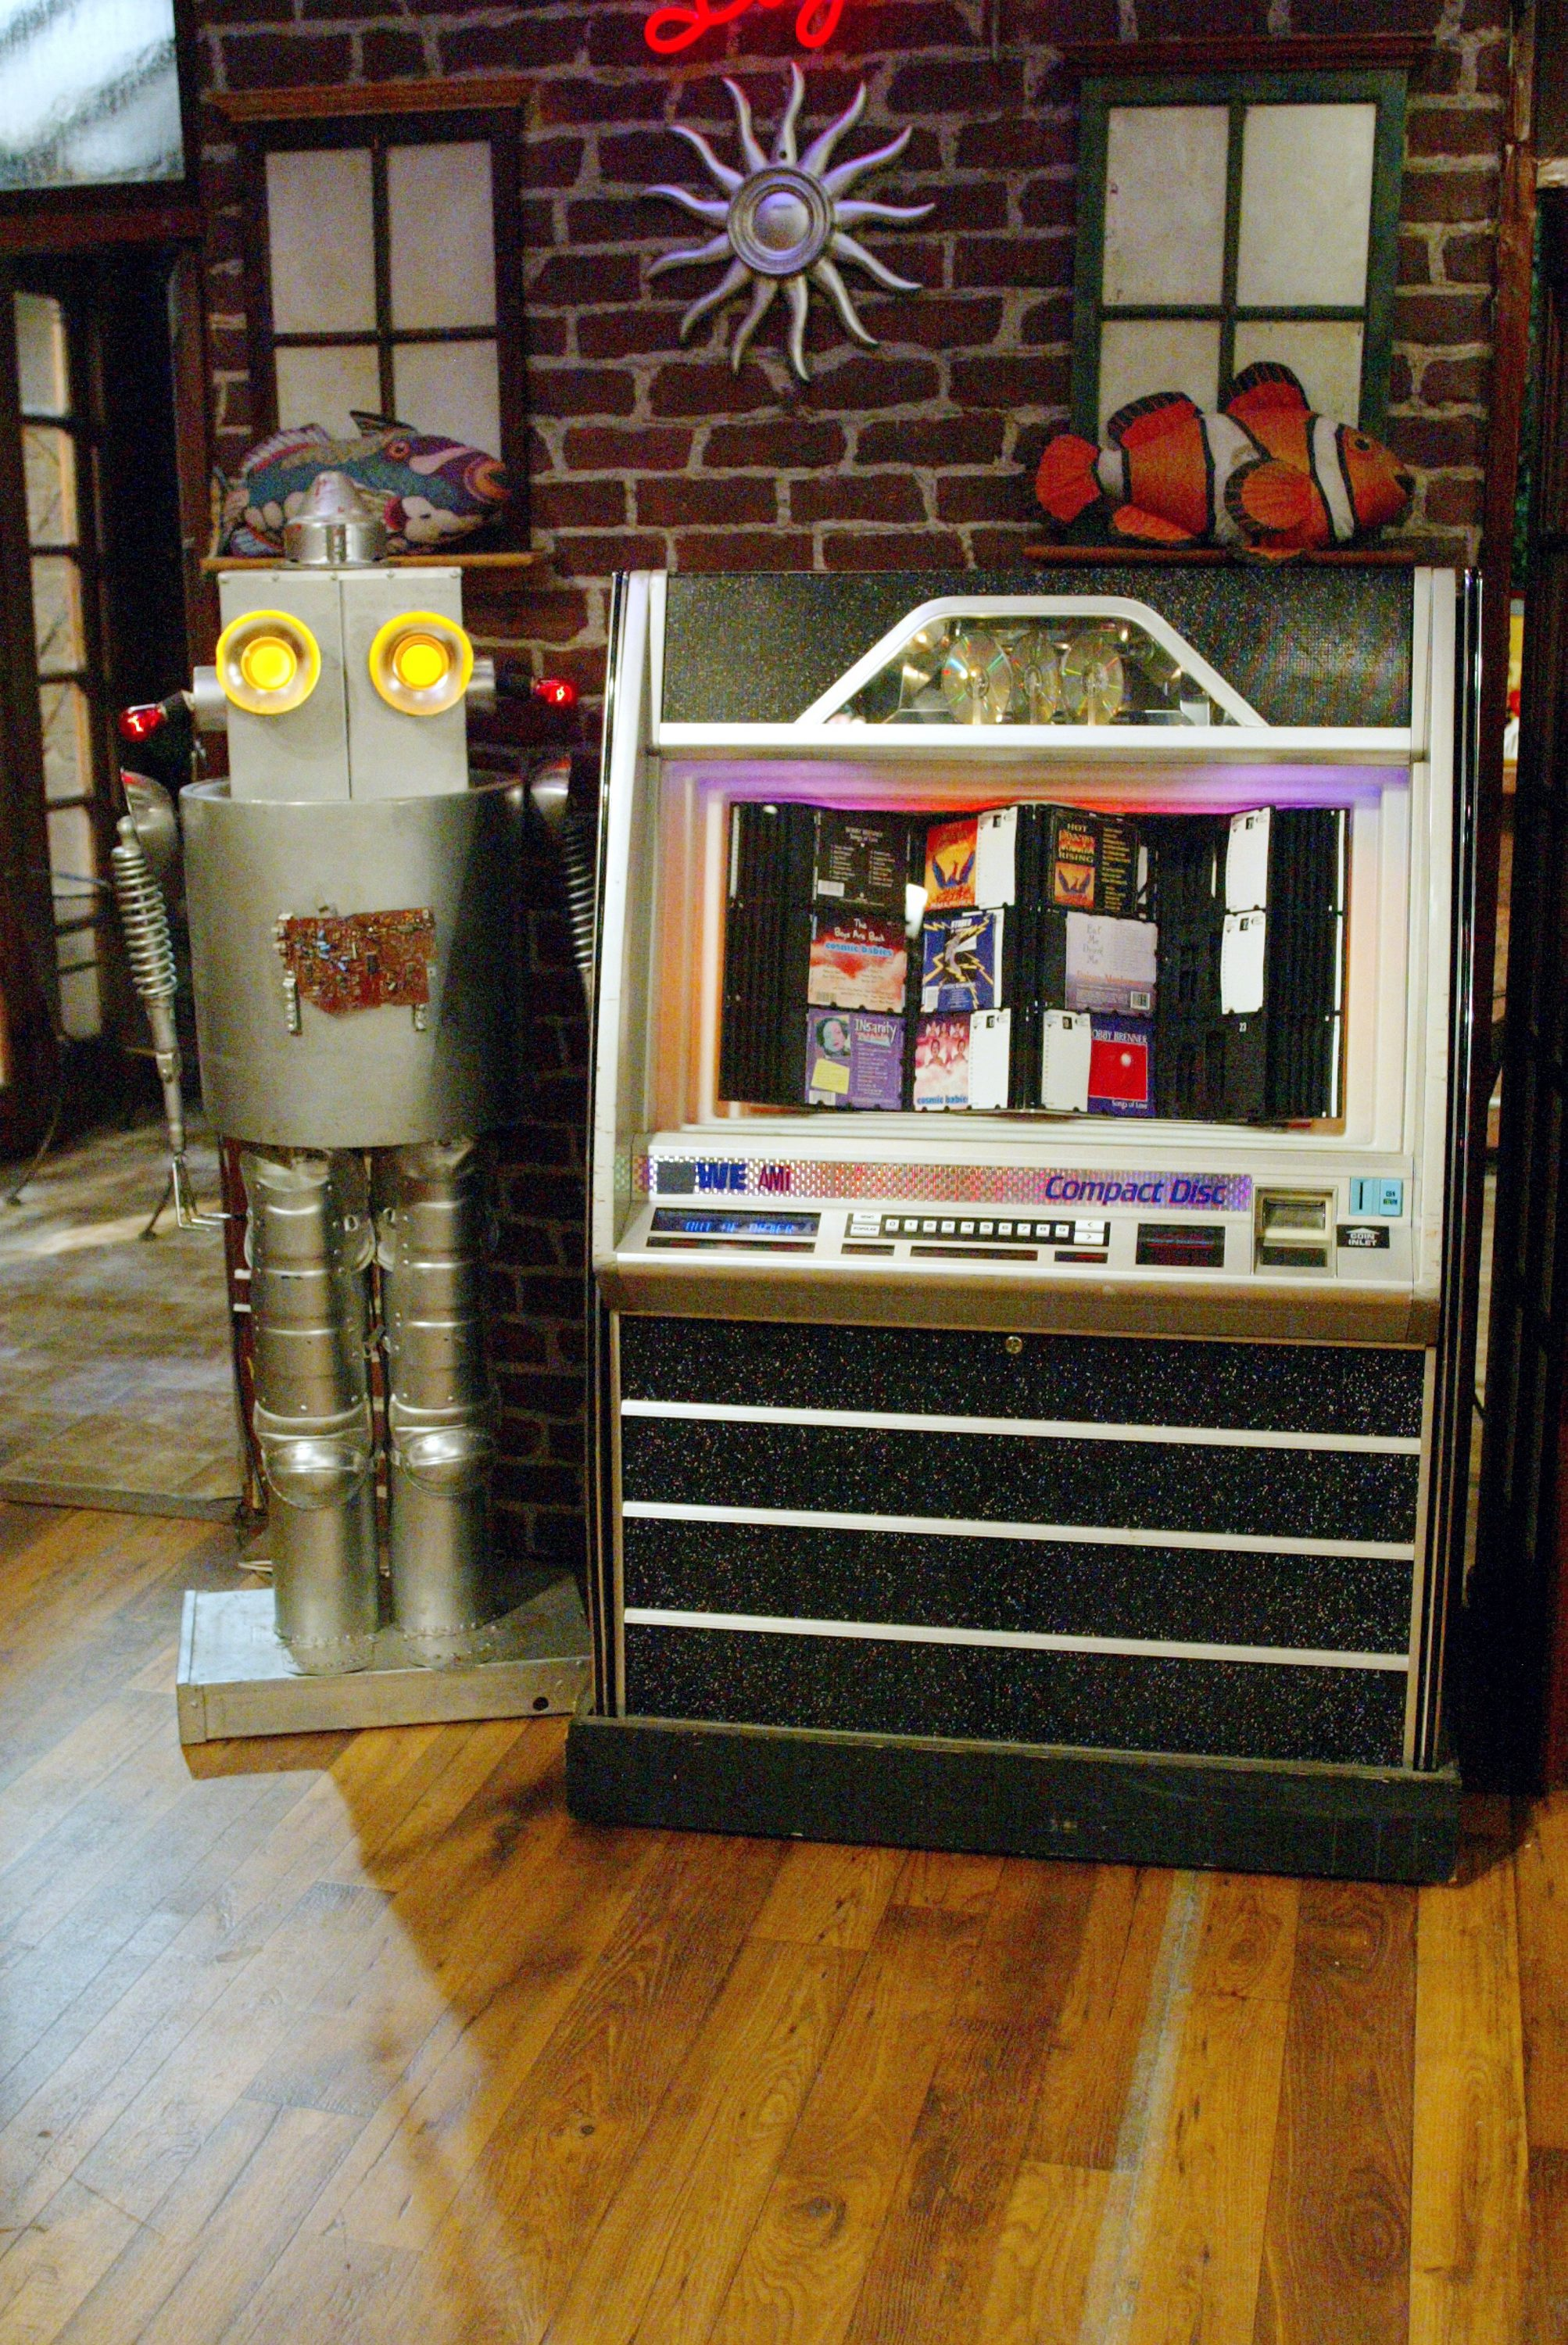 Robot and the Jukebox